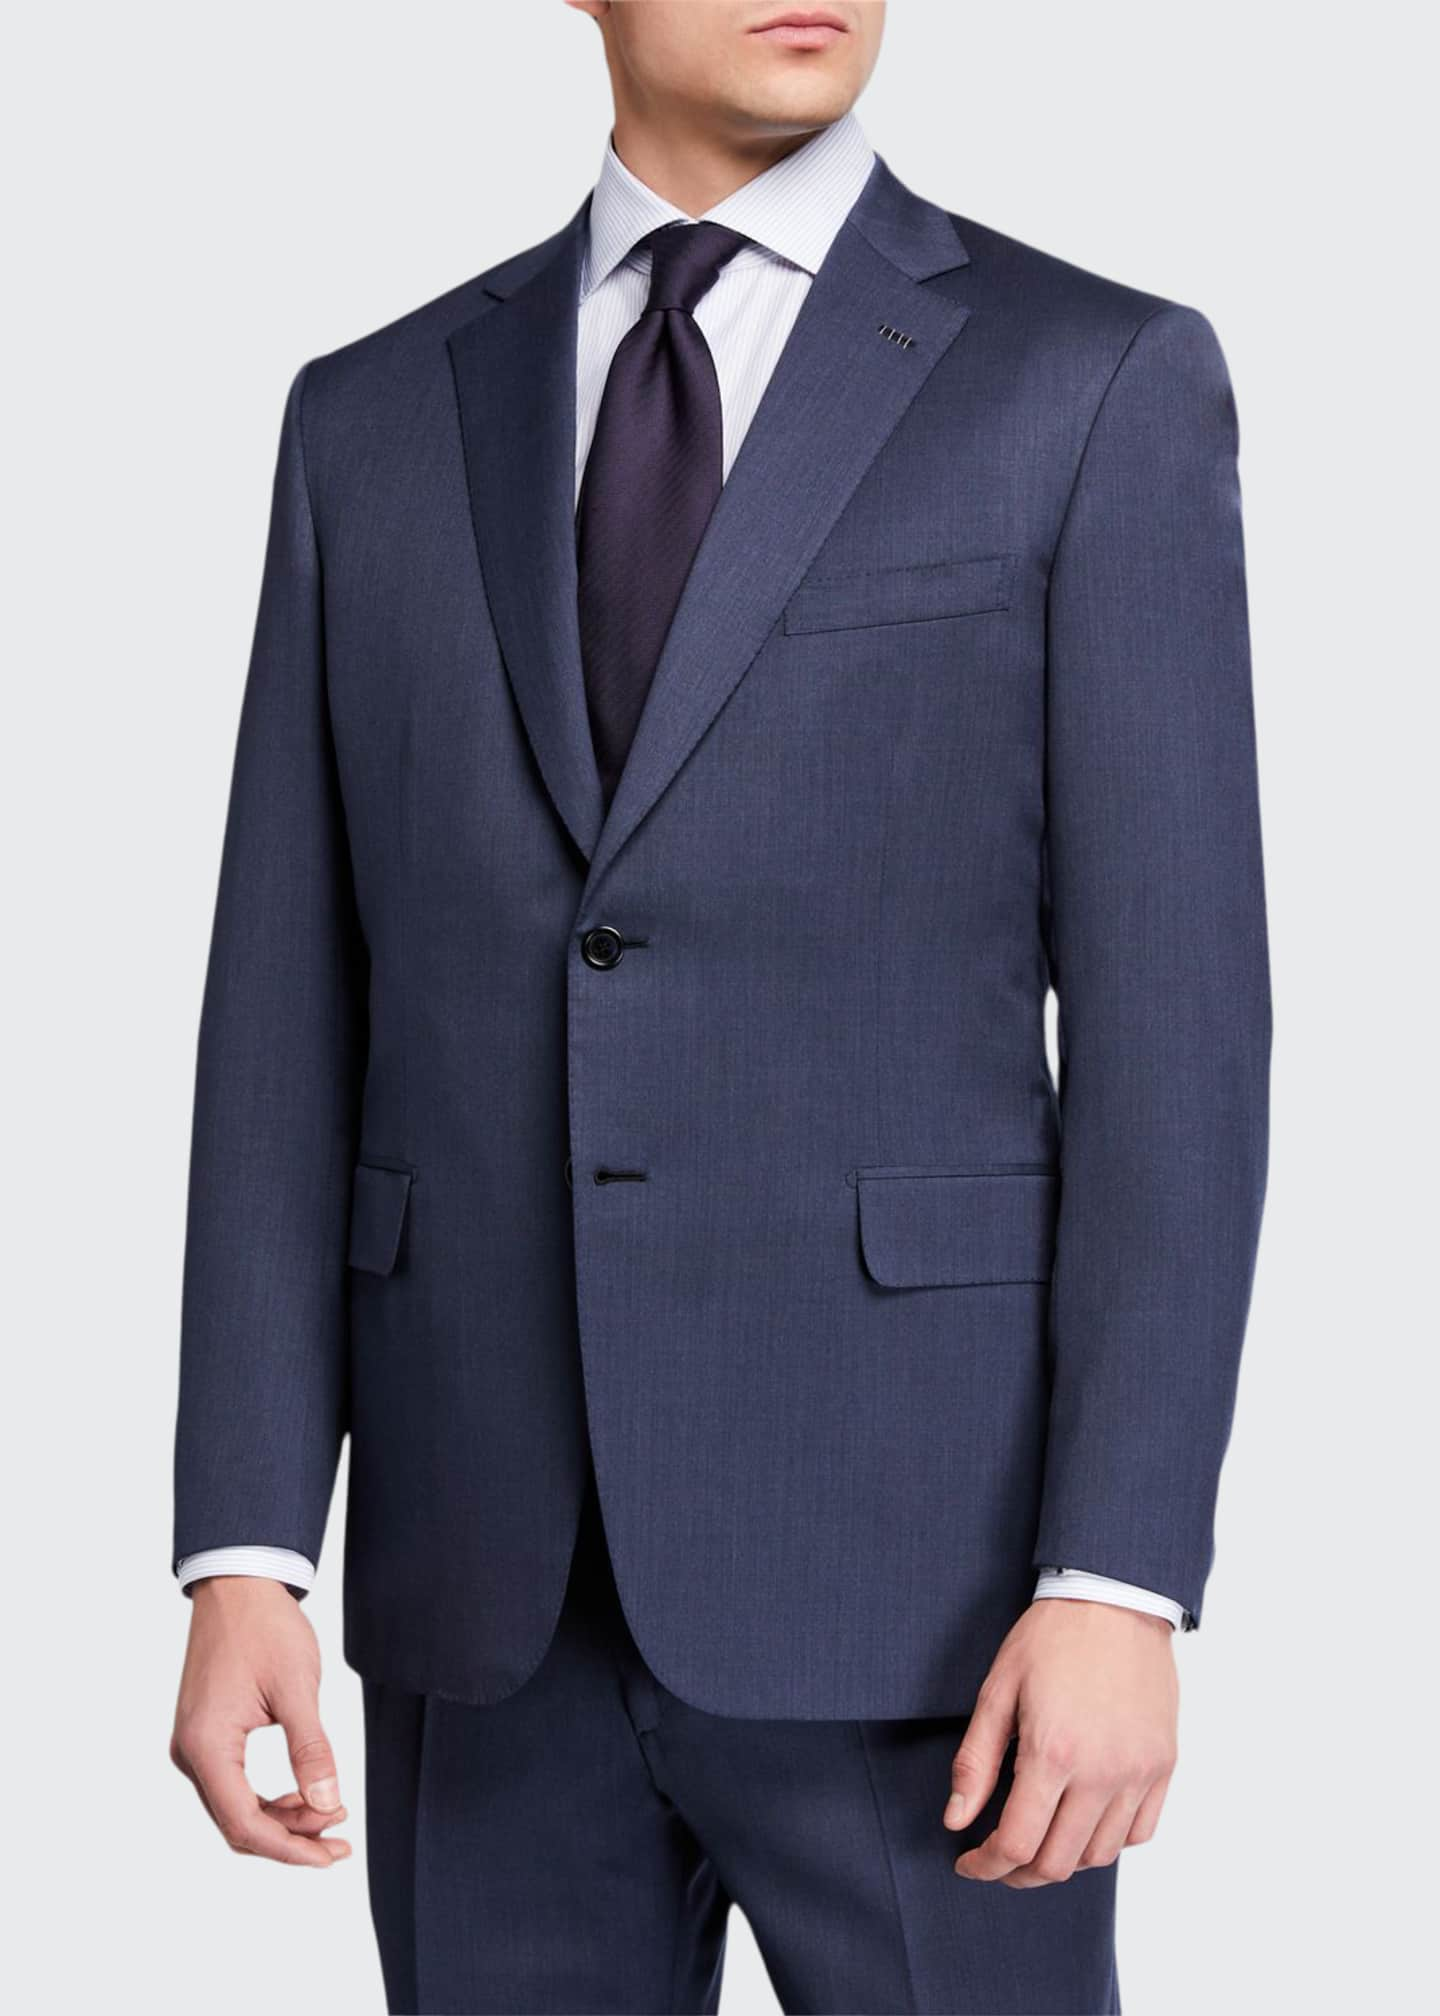 Canali Charcoal Grey Wool Classic Fit Mens Suit Size 44R US Made Italy New $1695